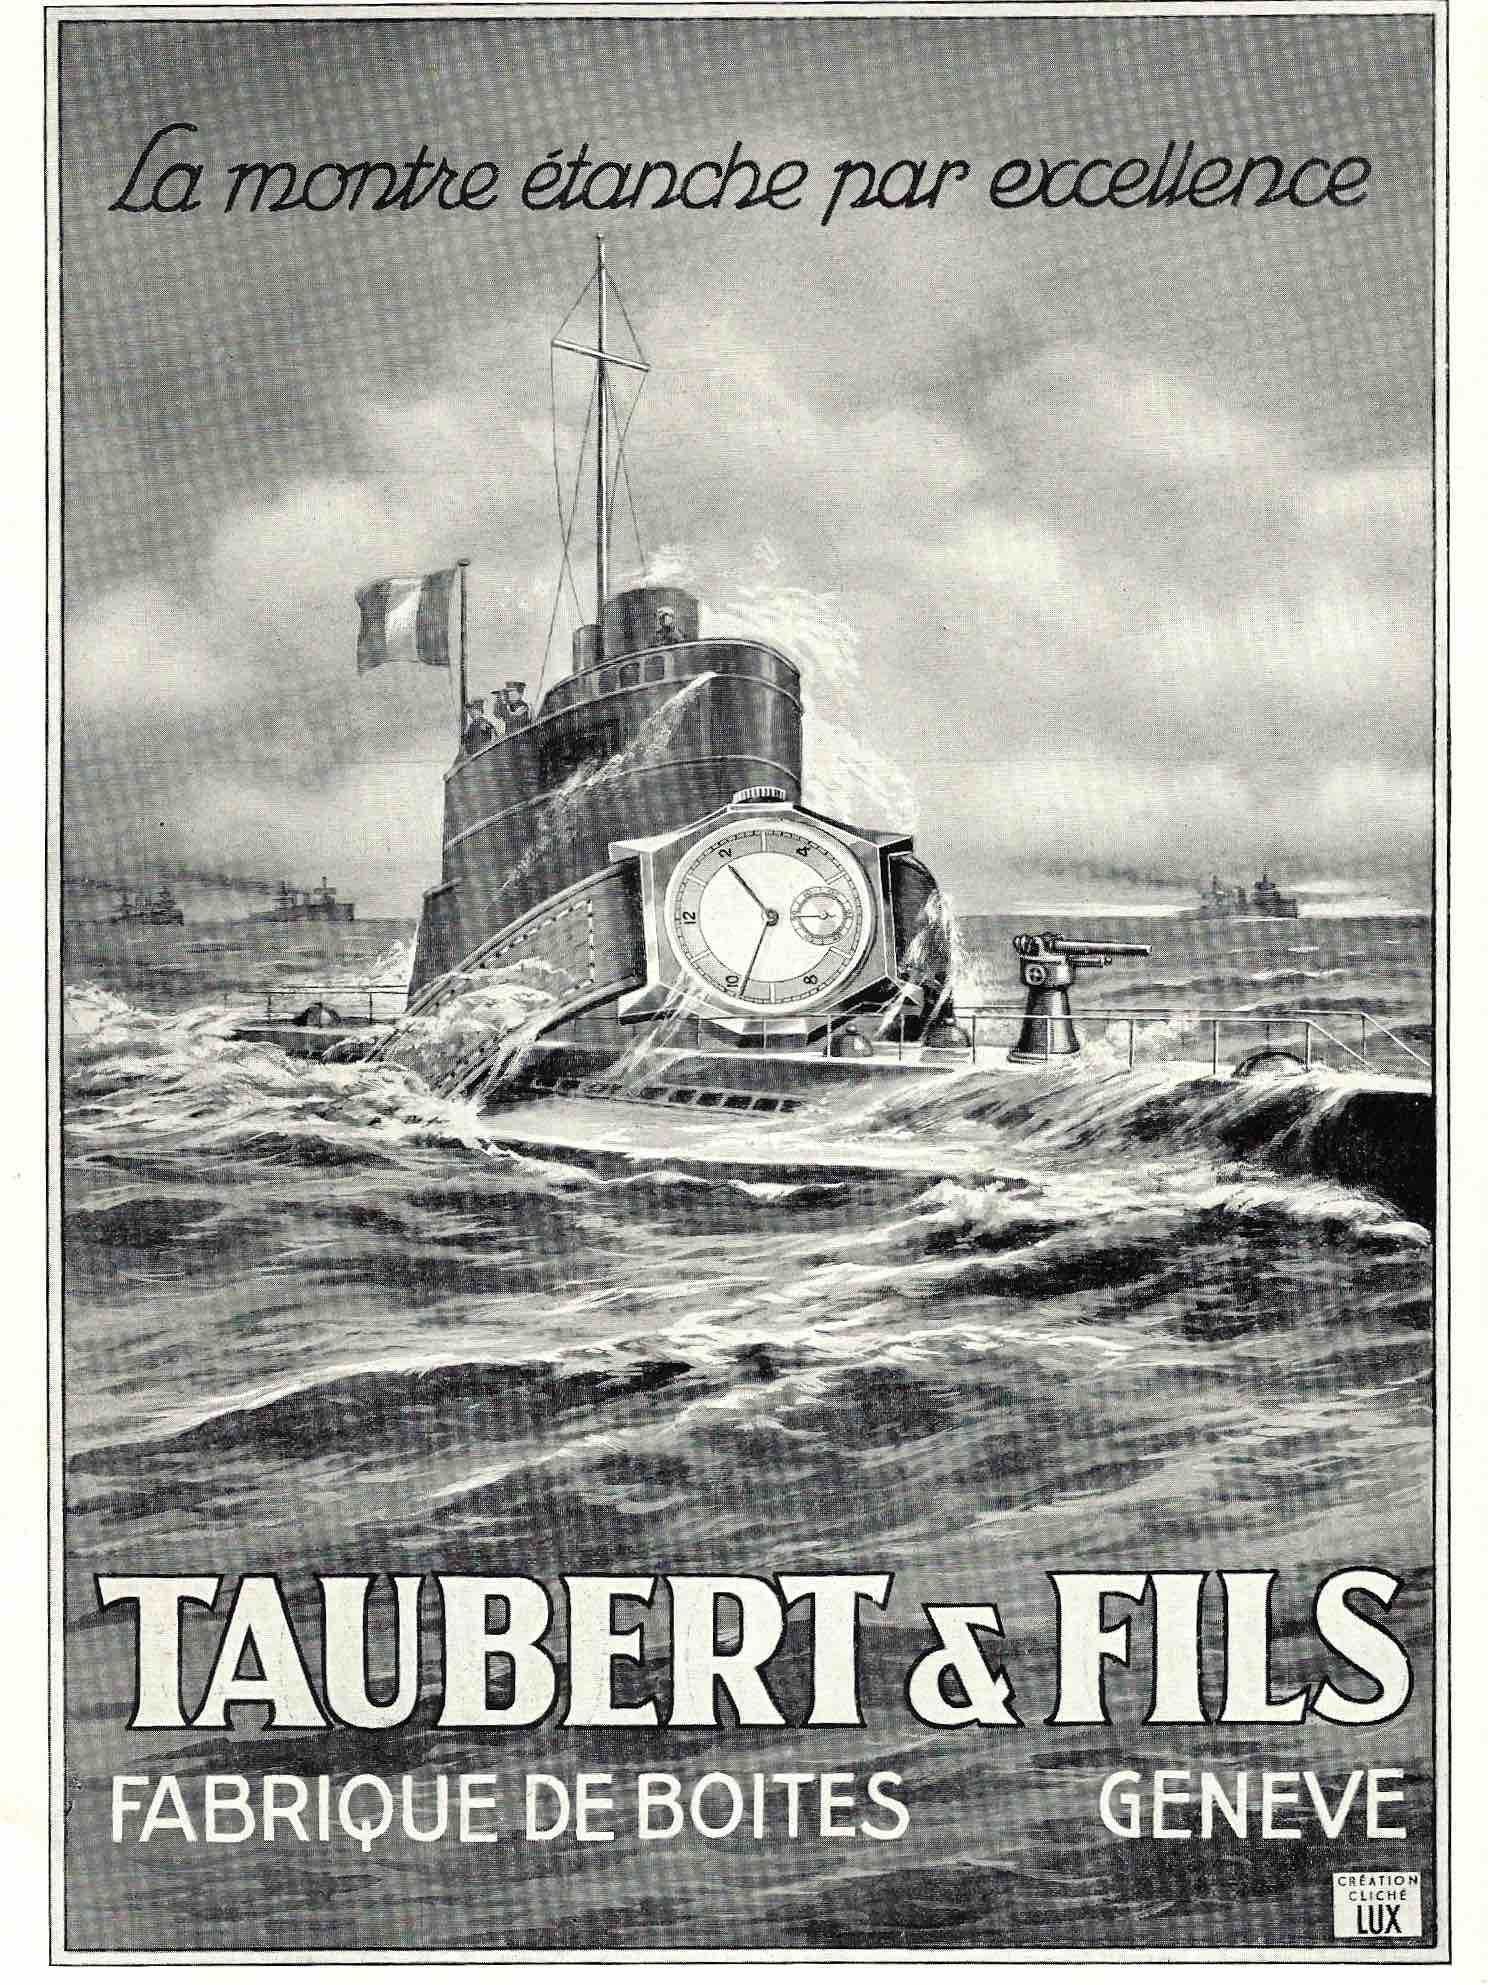 Taubert & Fils advert from 1939 in Borgel – The Master Casemaker you Haven't Heard Of for A Collected Man London